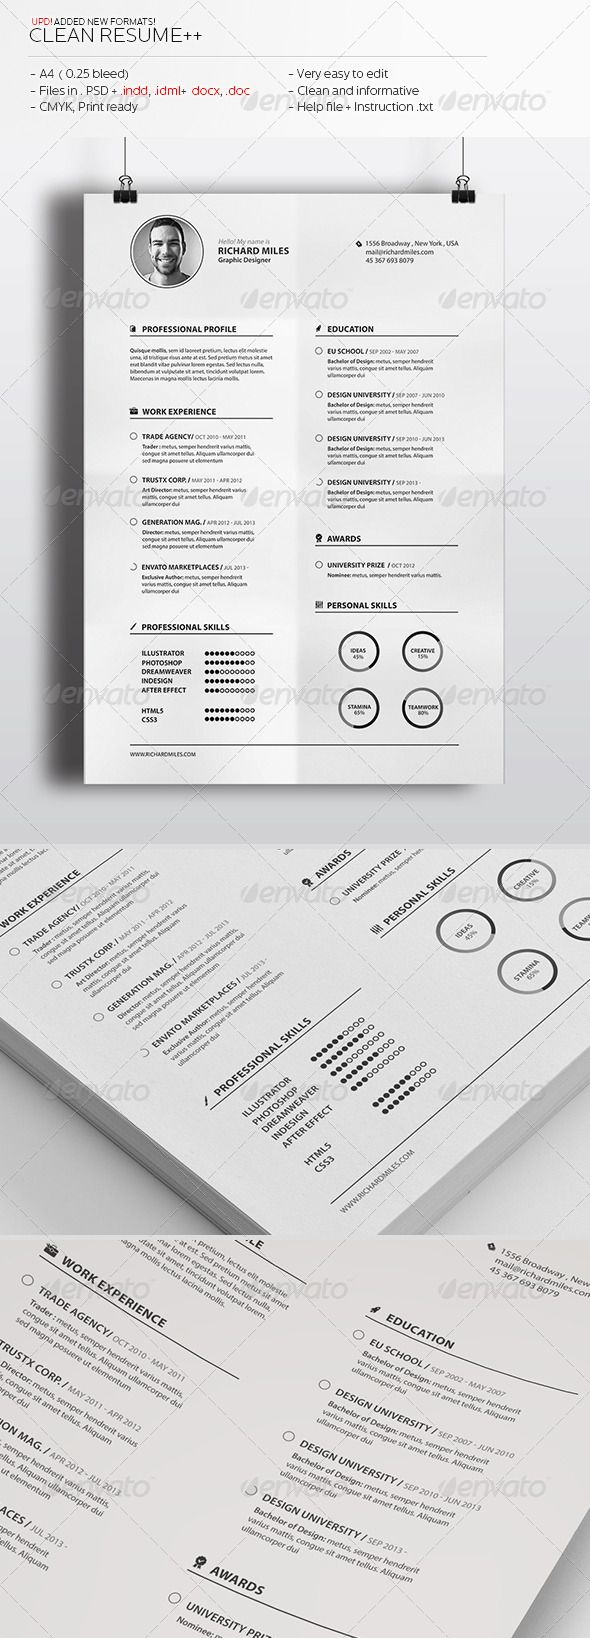 22 Best Curriculum Vitae Design Images On Pinterest Resume